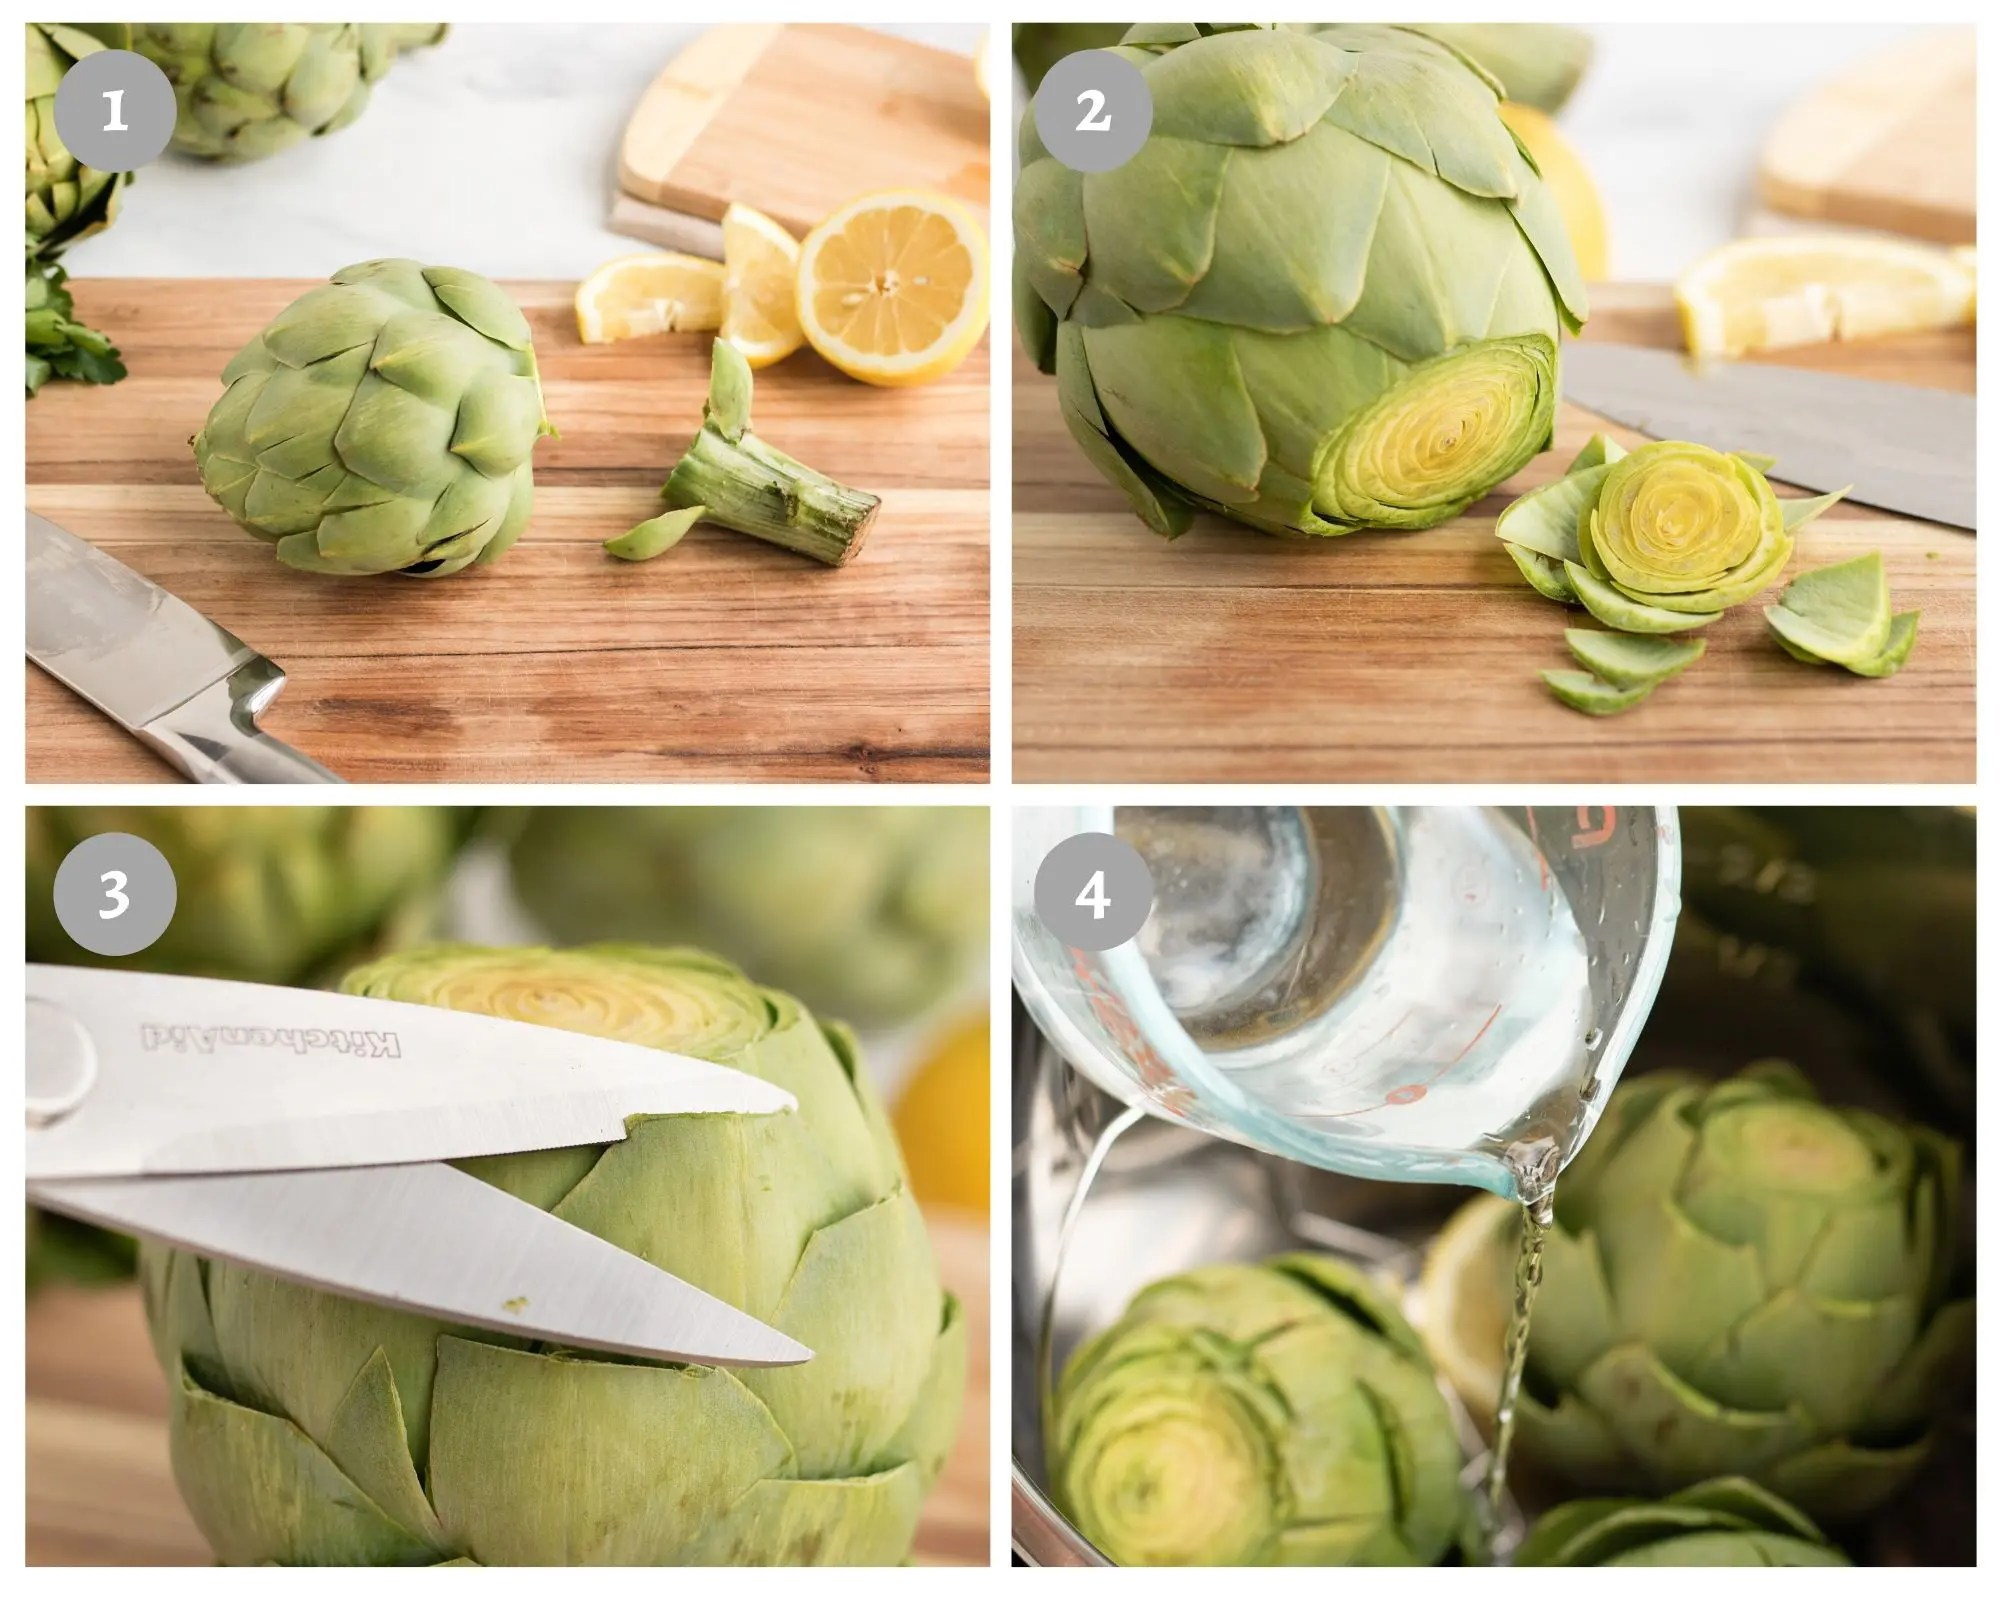 Instant Pot Artichokes - process shots